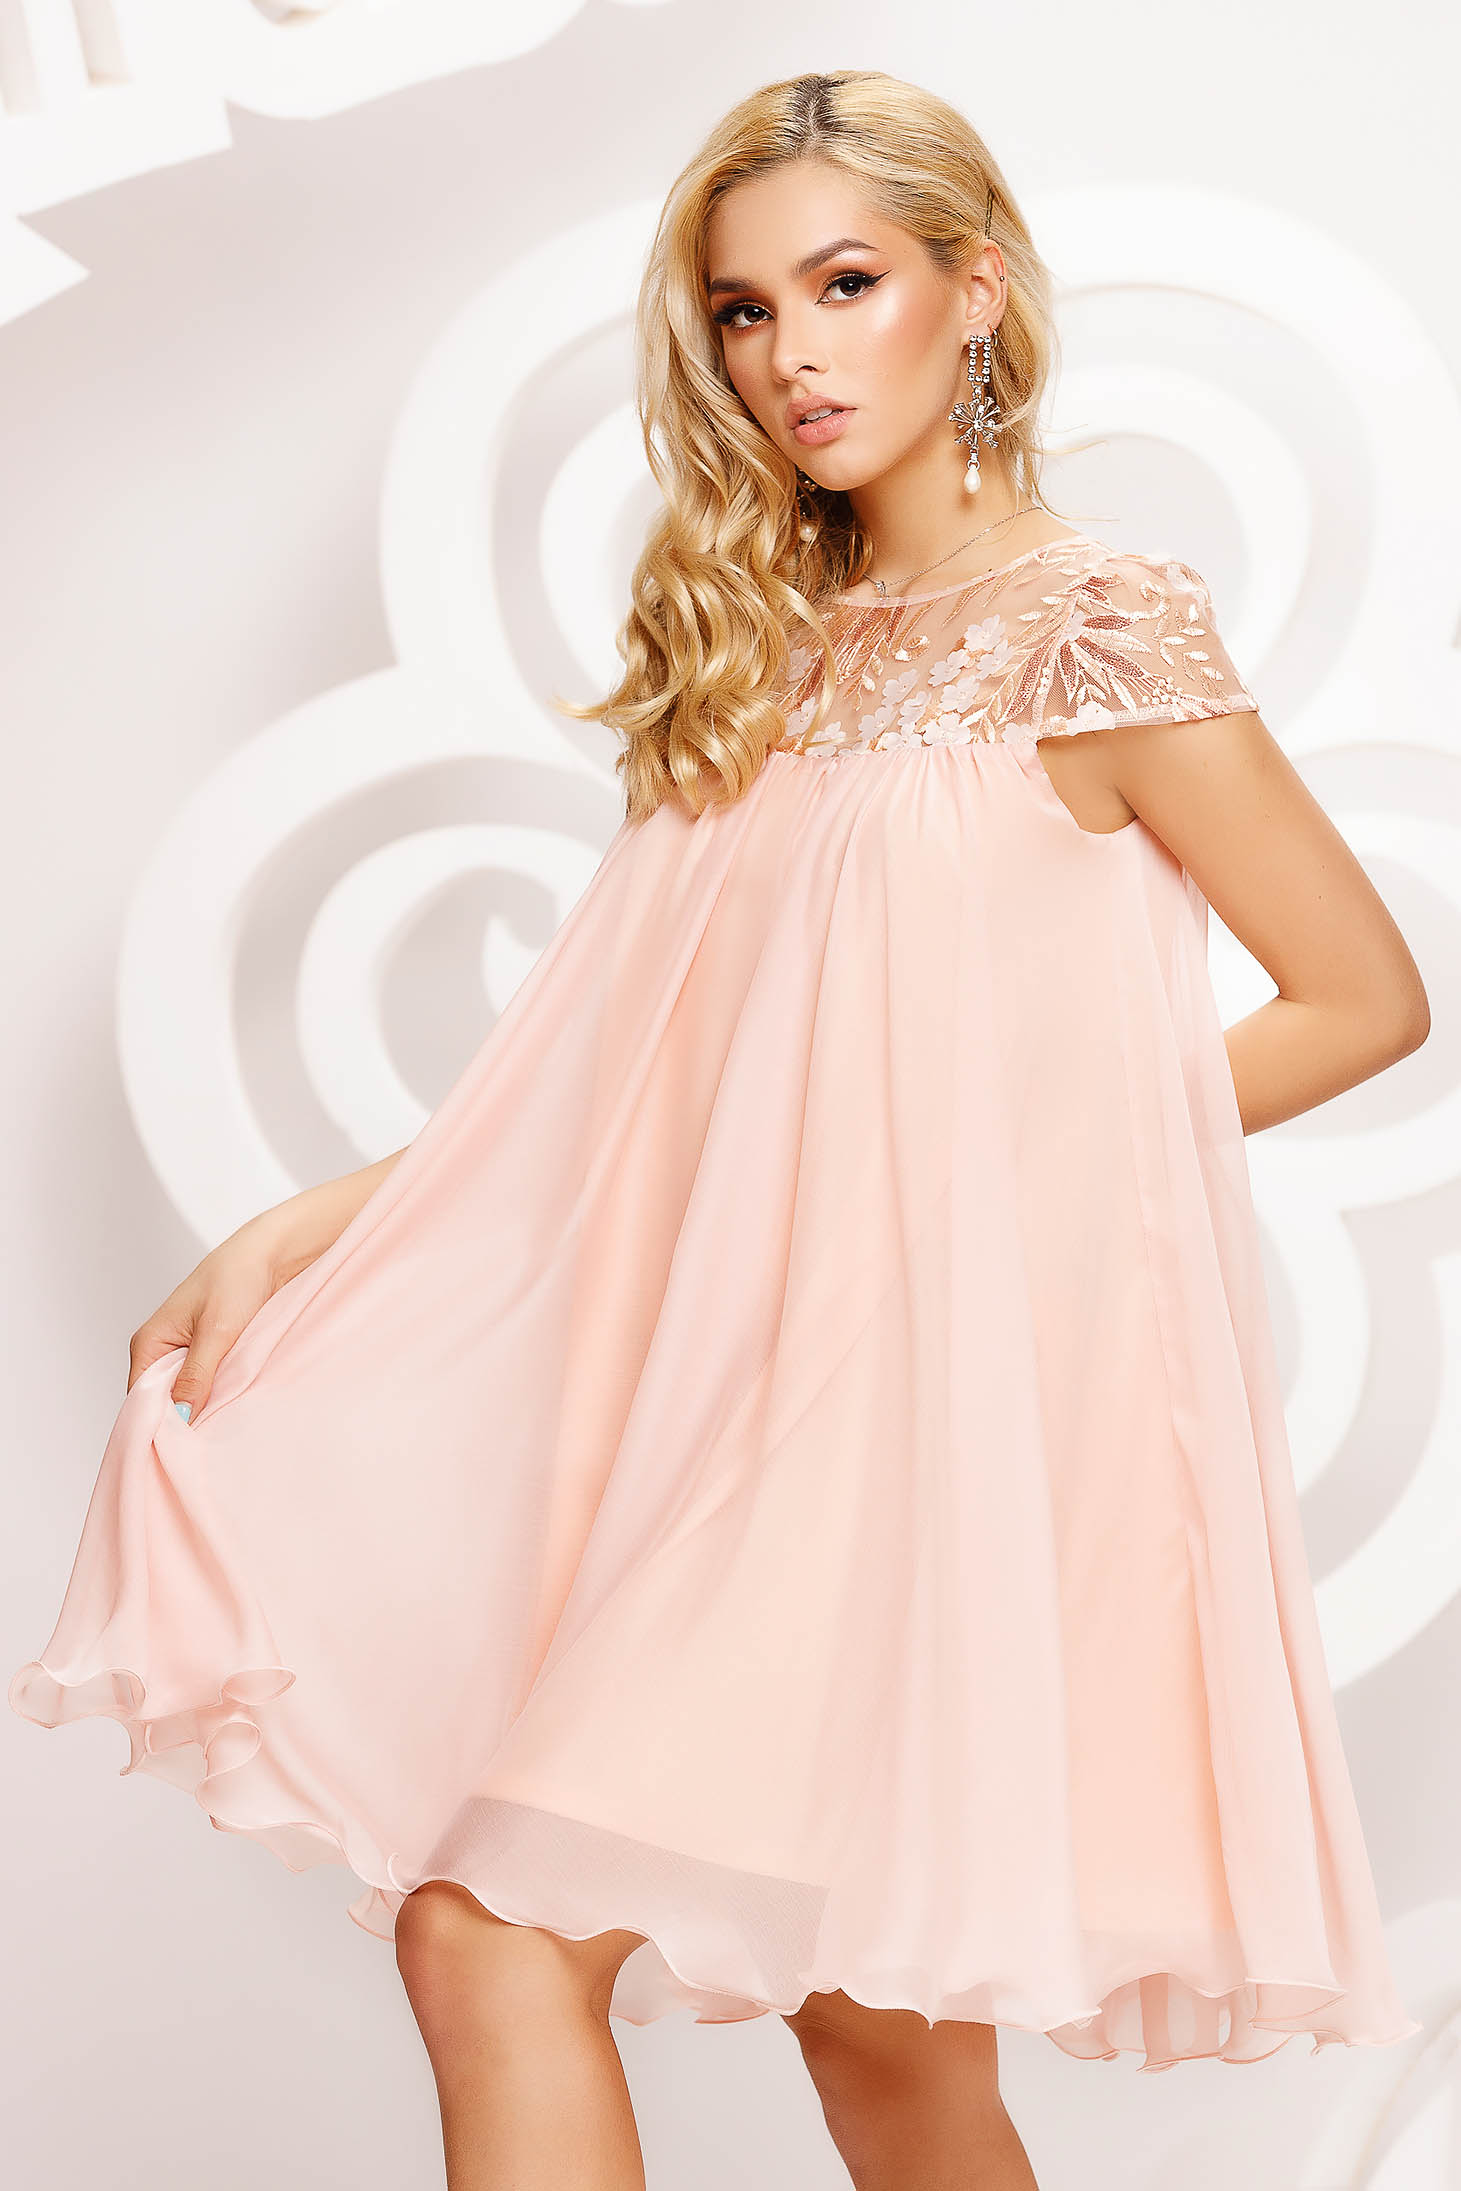 Peach dress from veil fabric occasional with lace details loose fit short cut